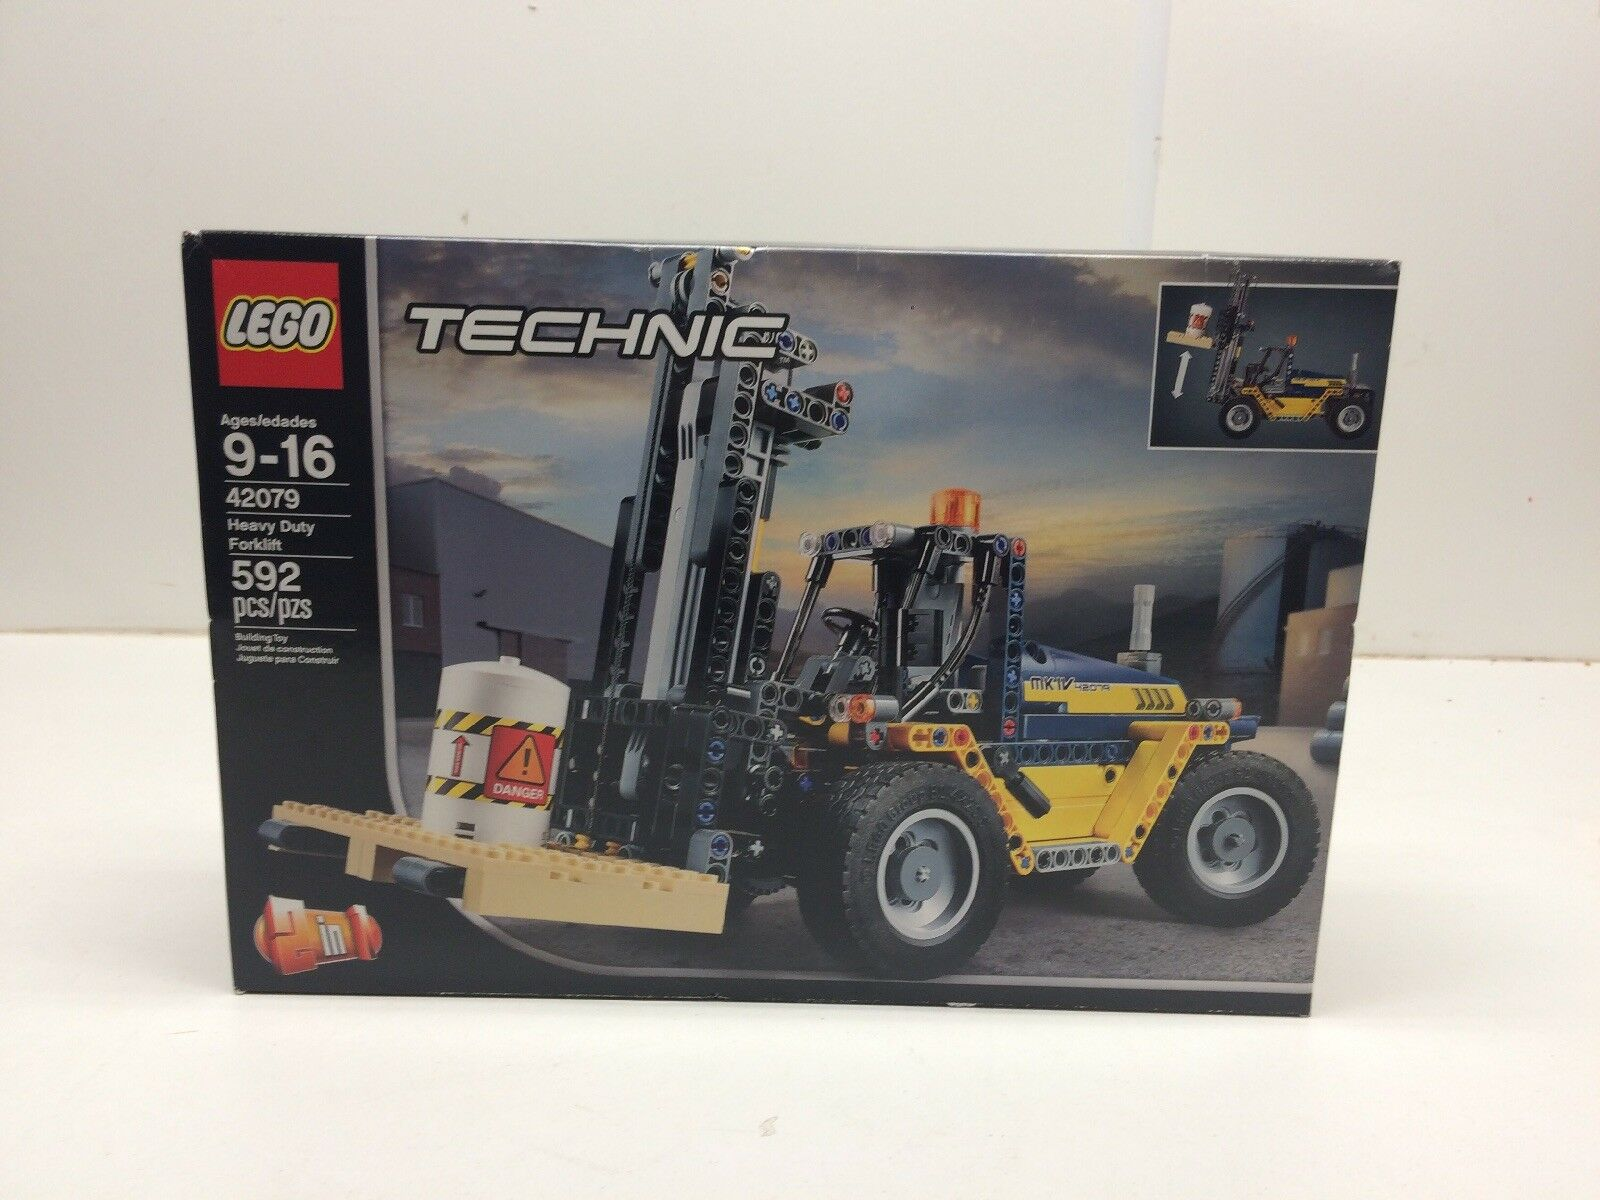 nuovo LEGO Technic 42079 Heavy Duty Forklift NISB Sealed   acquisti online